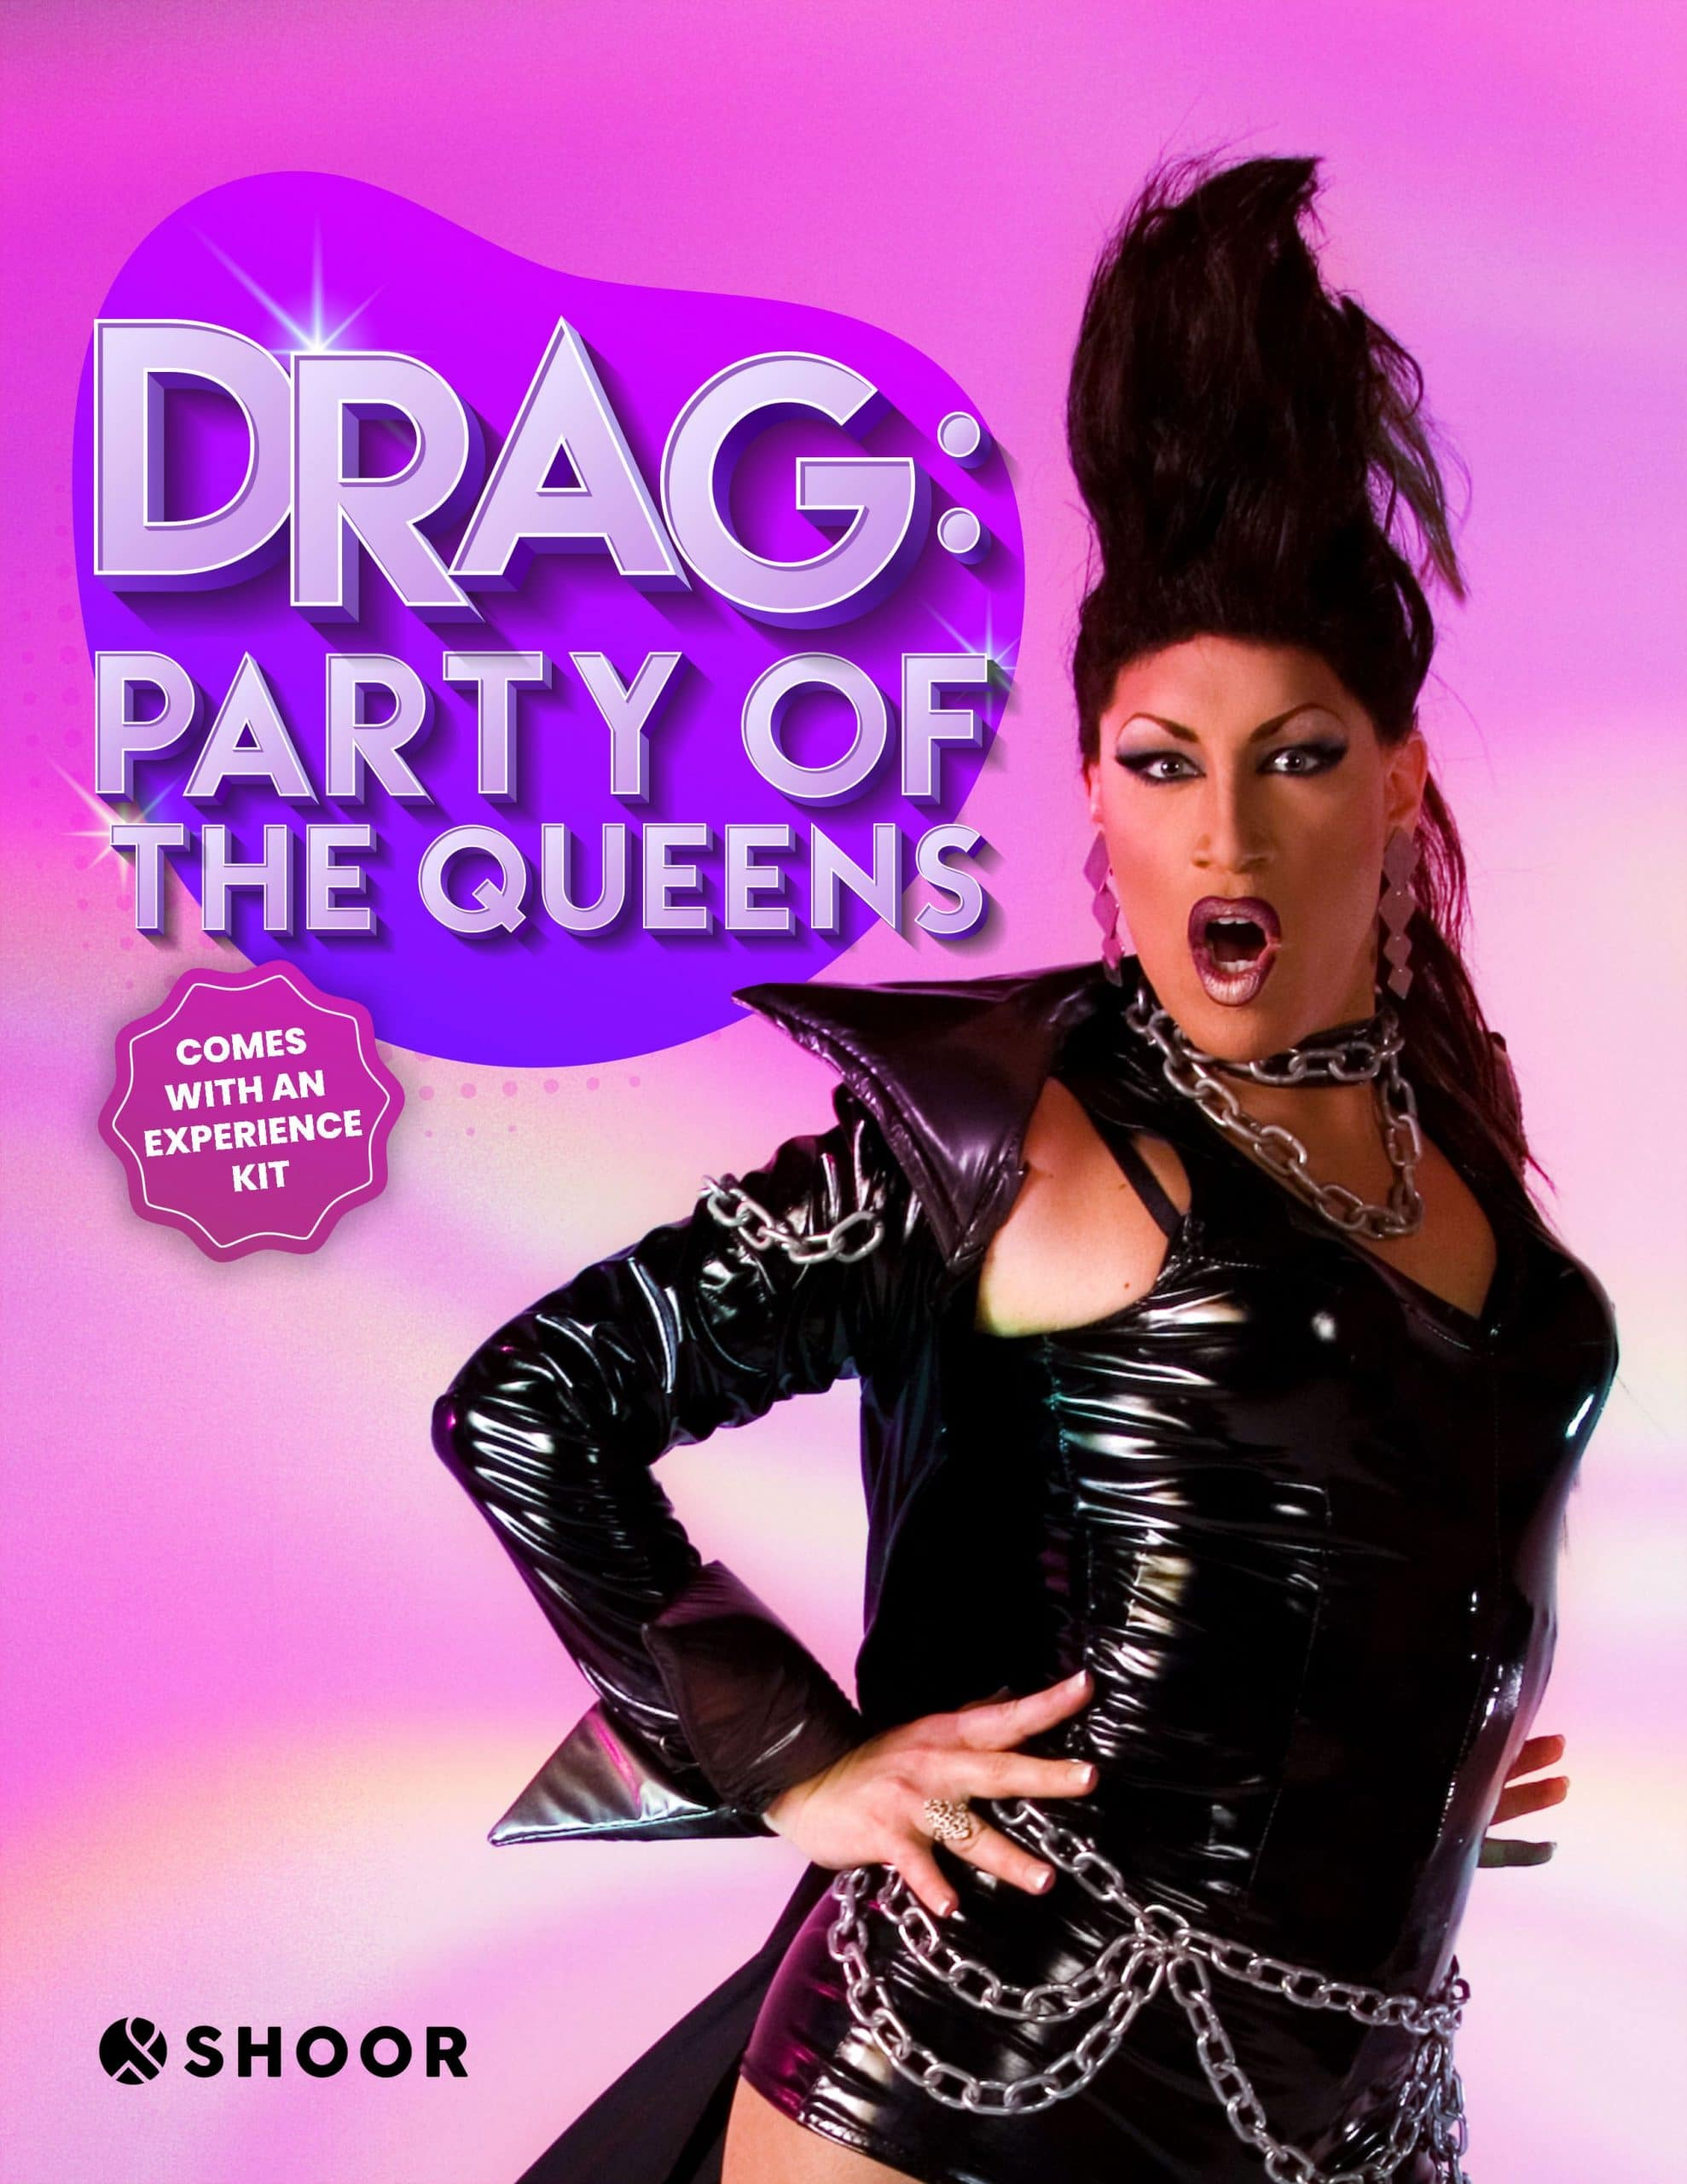 Drag: Party of the Queens - virtual team building activity